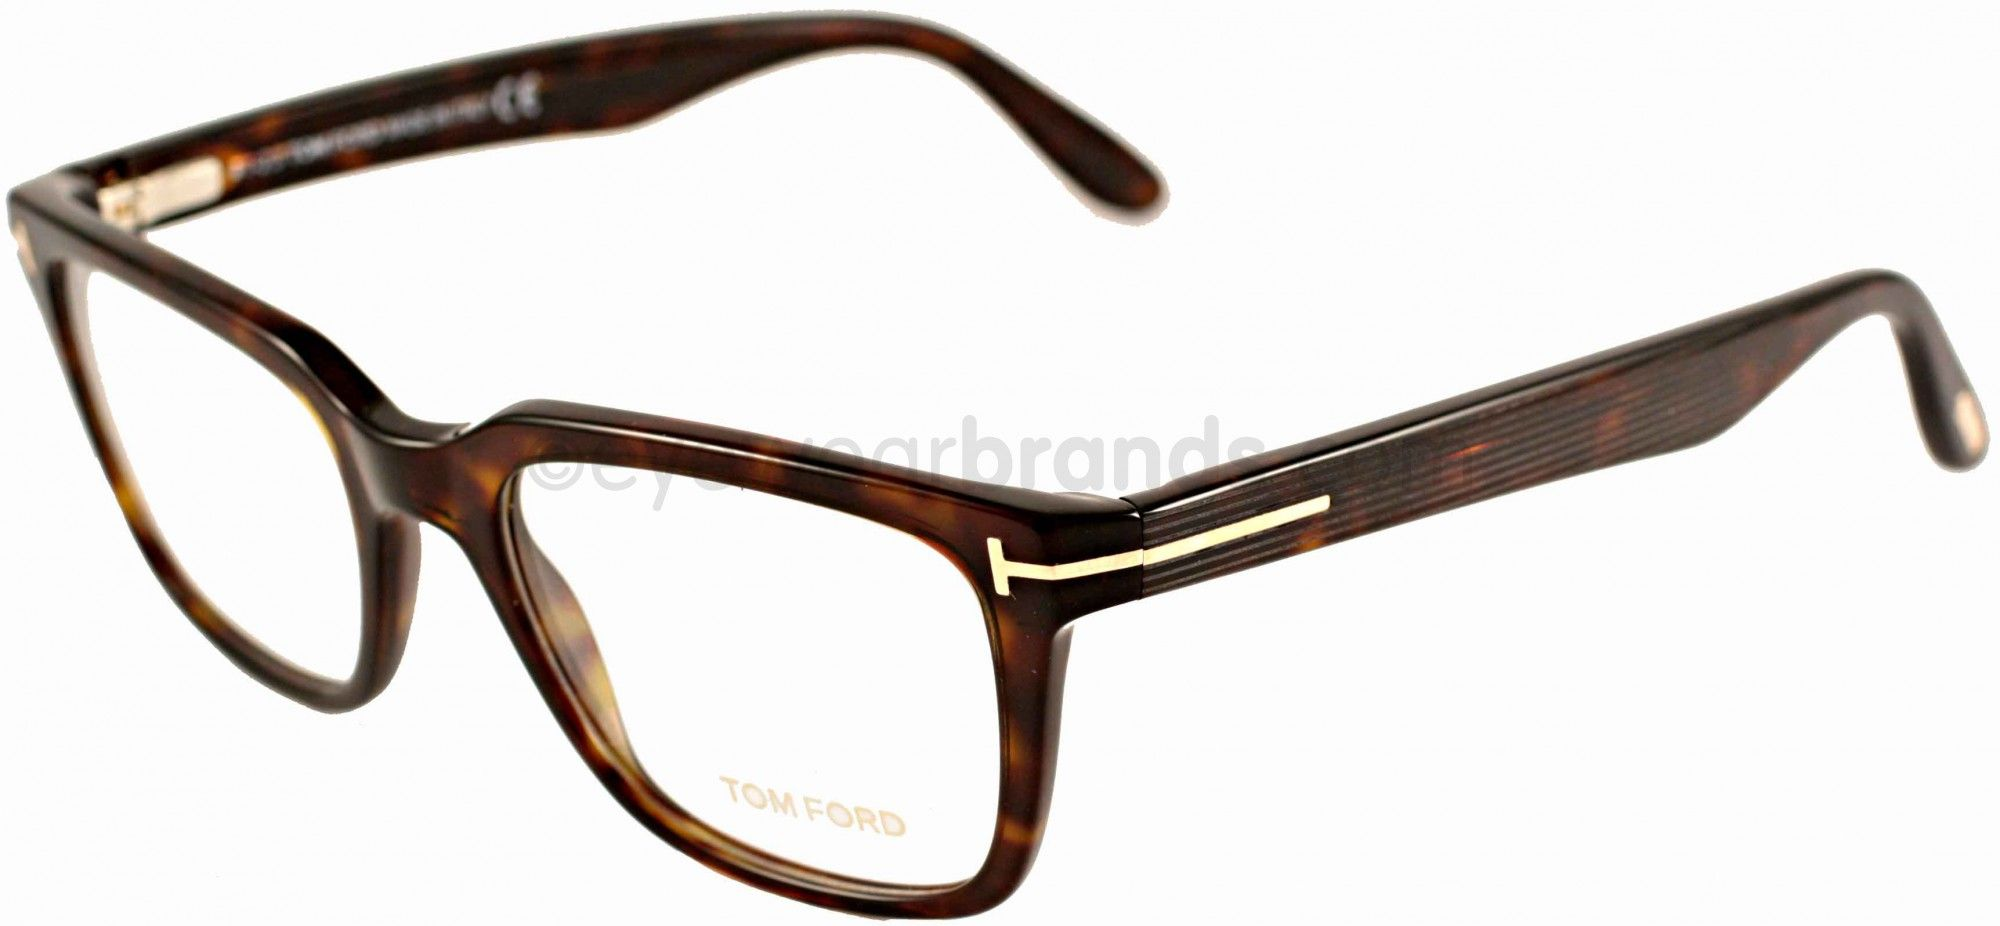 945f97993c6 Tom Ford TF5304 052 Havana Glasses